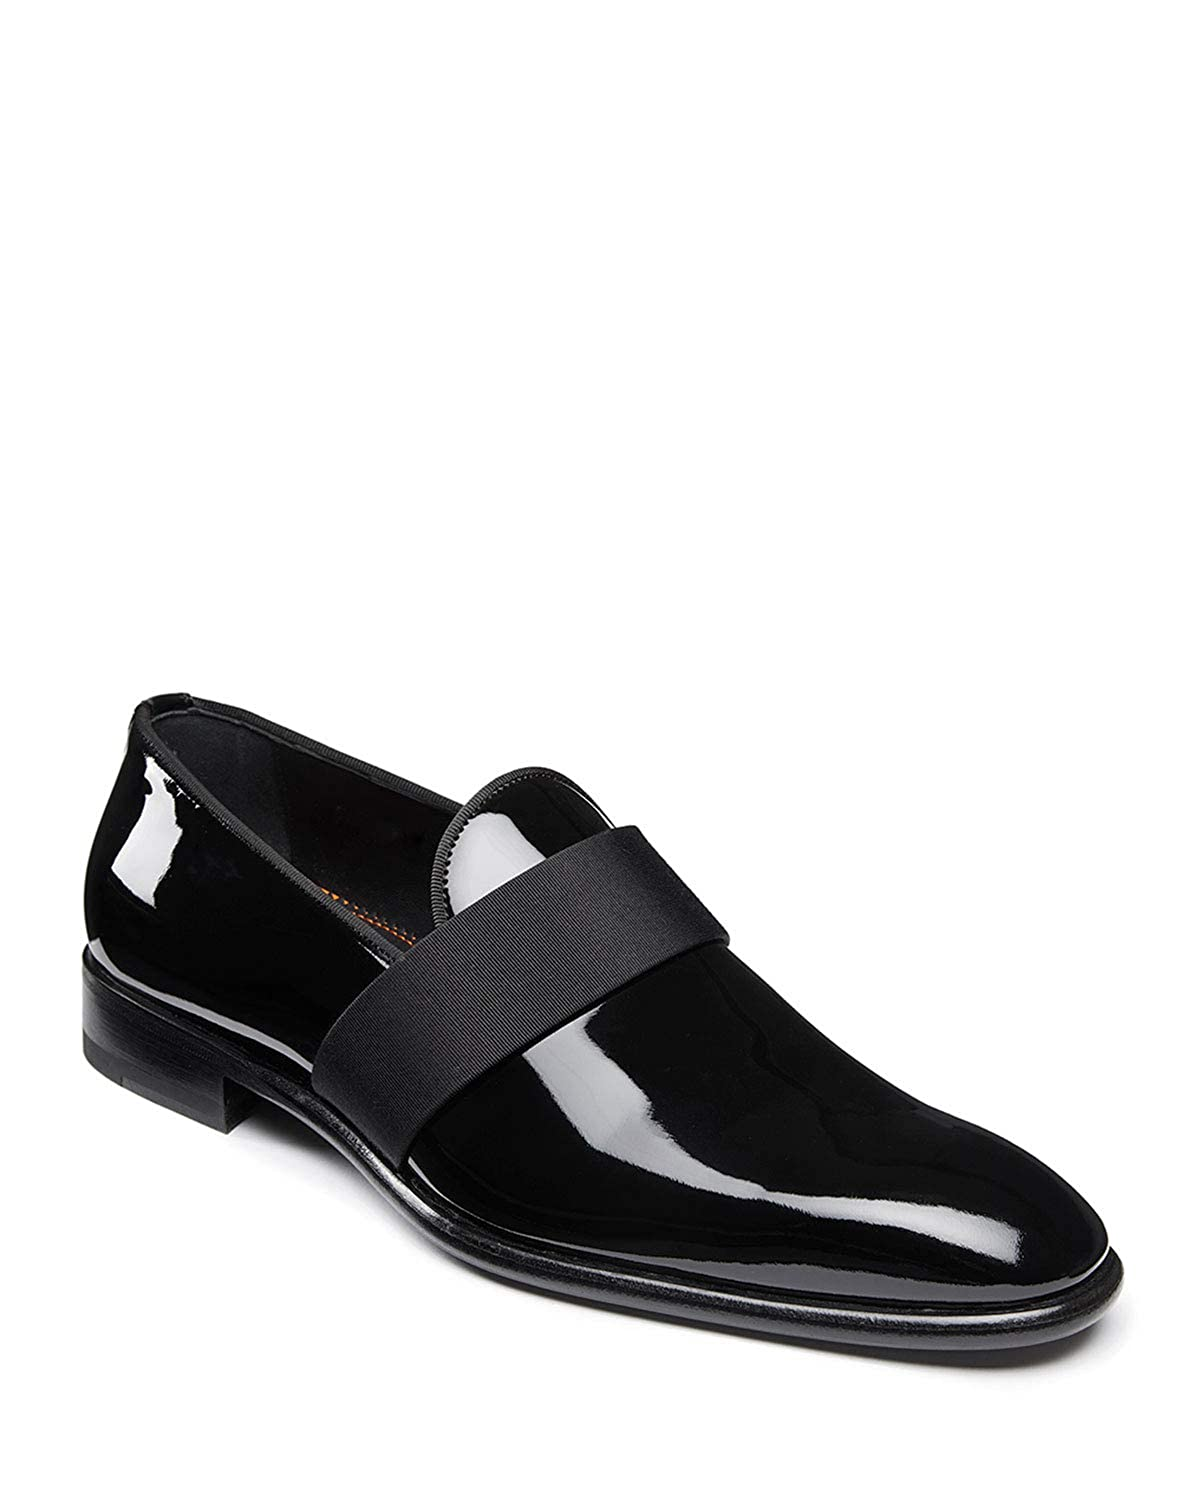 Buy The Royale Peacock Black Patent